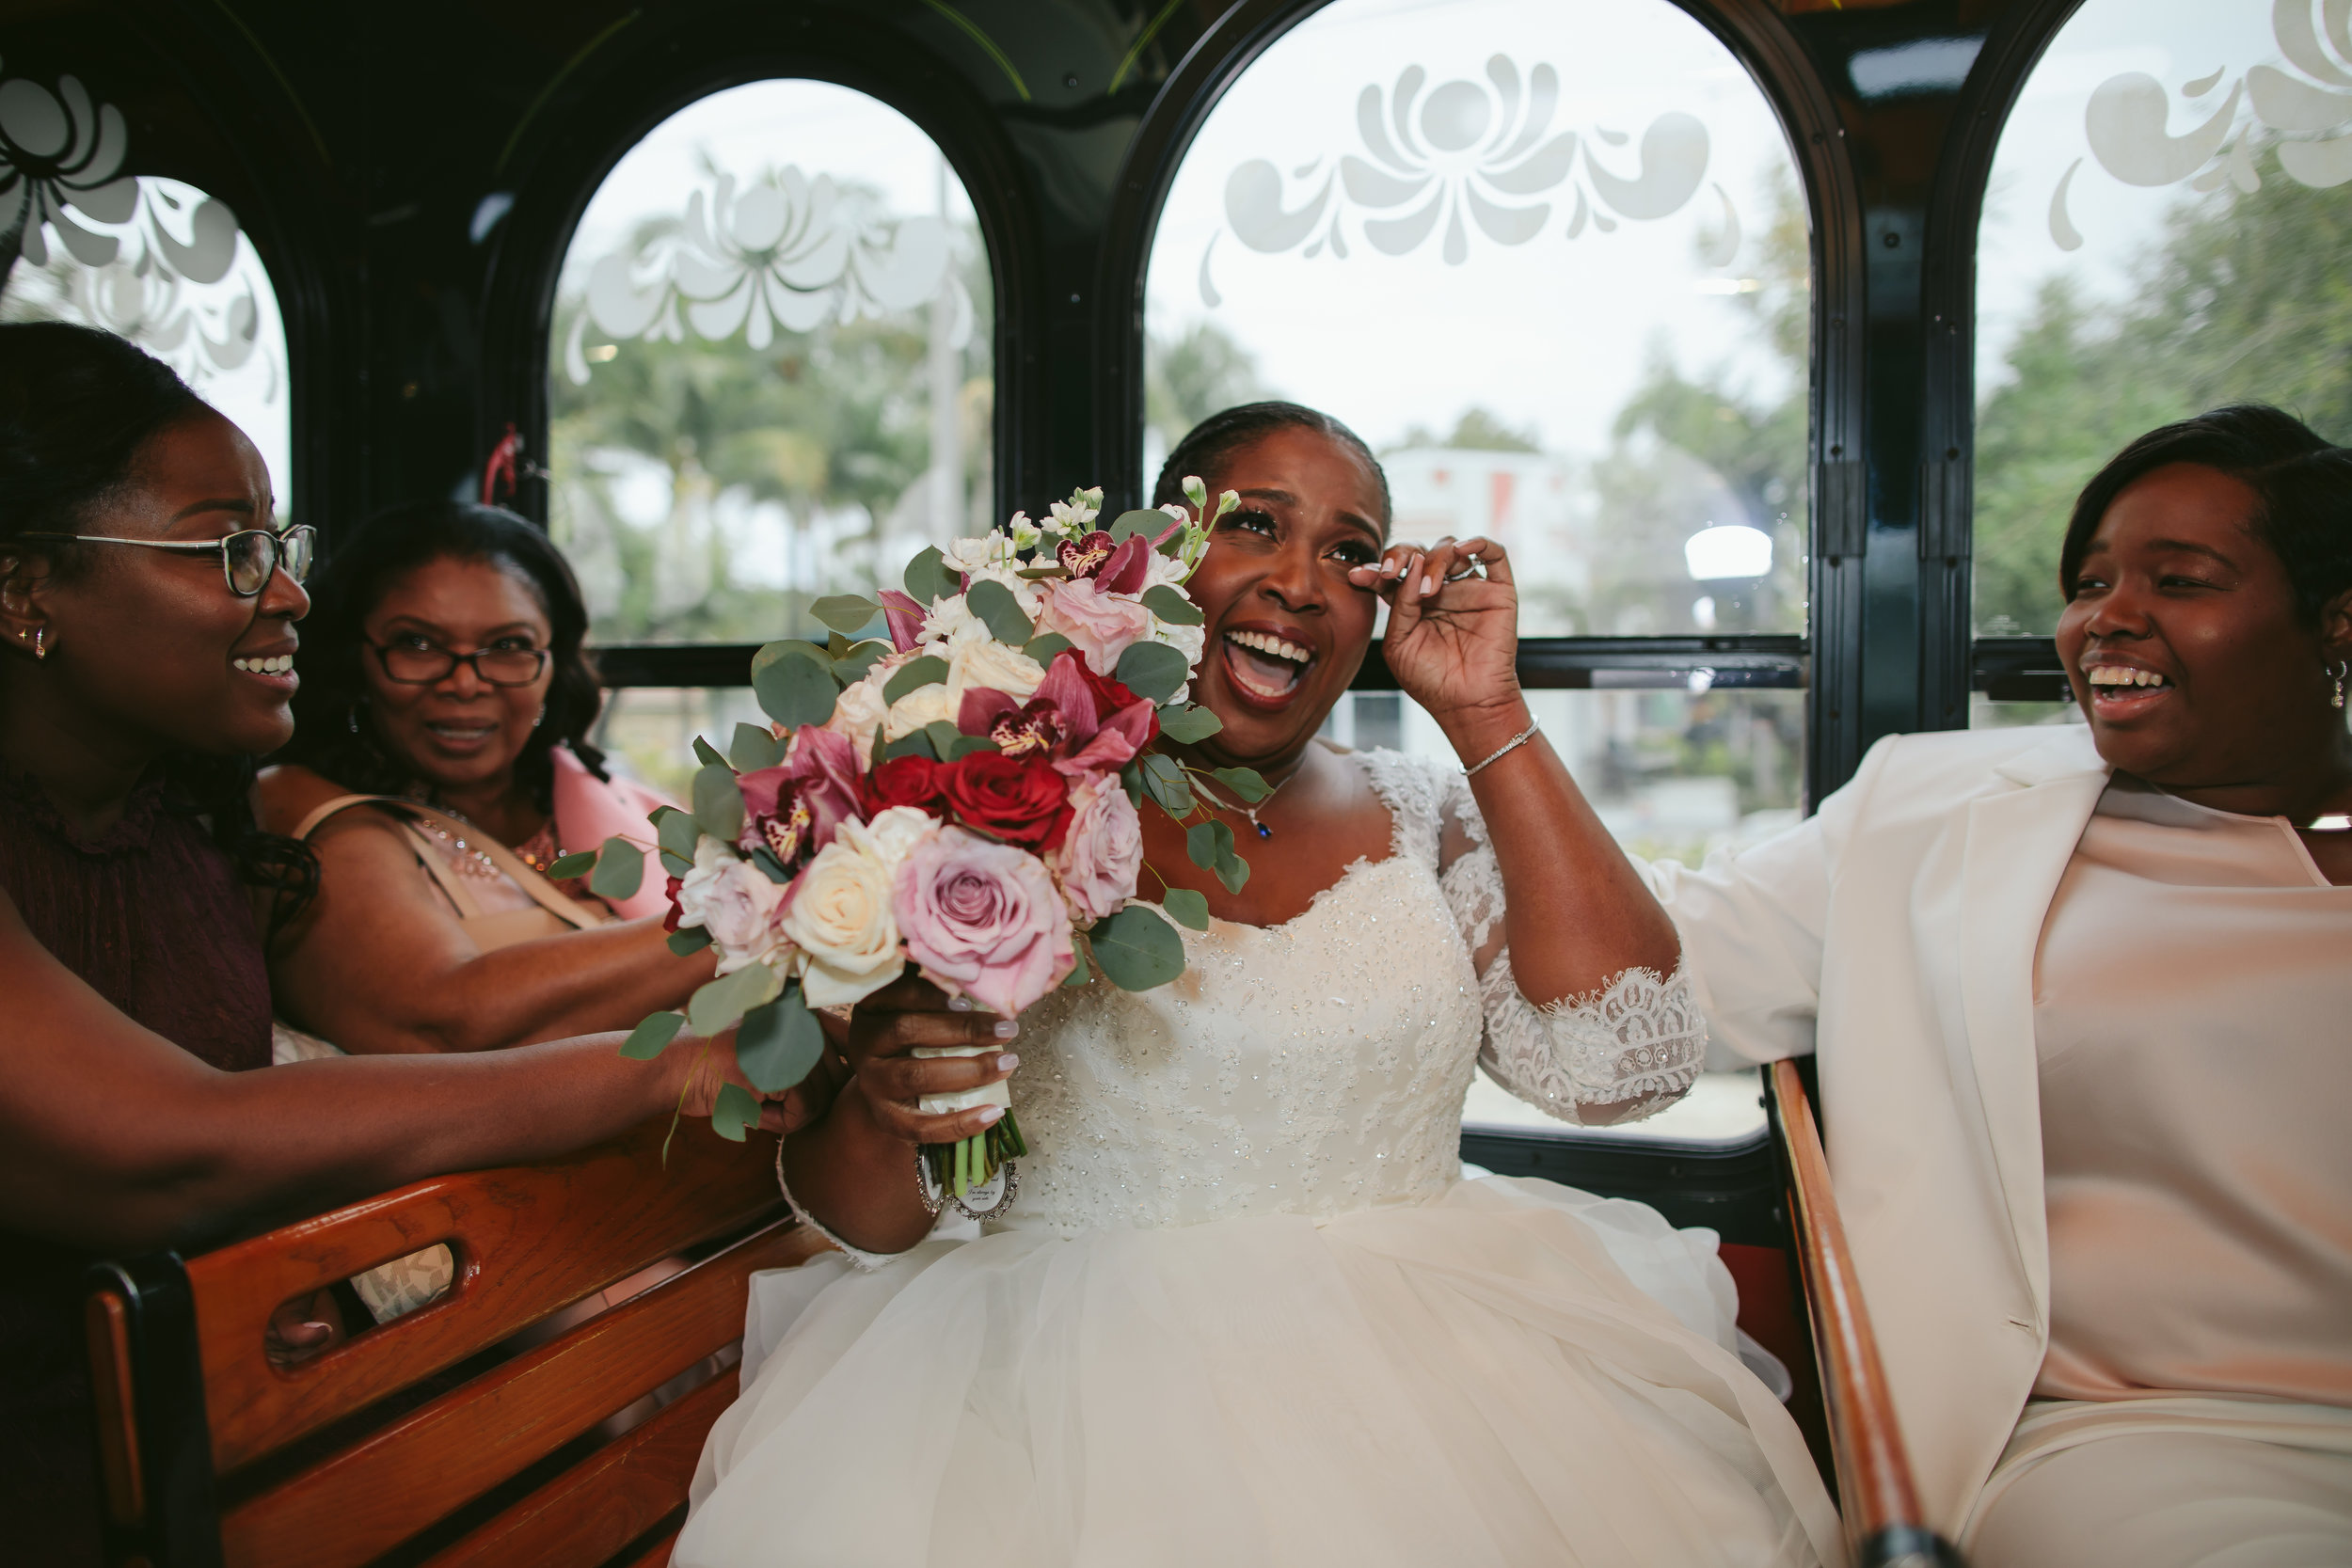 trolley-wedding-transport-delray-benvenuto-tiny-house-photo-south-florida-wedding-photographer.jpg